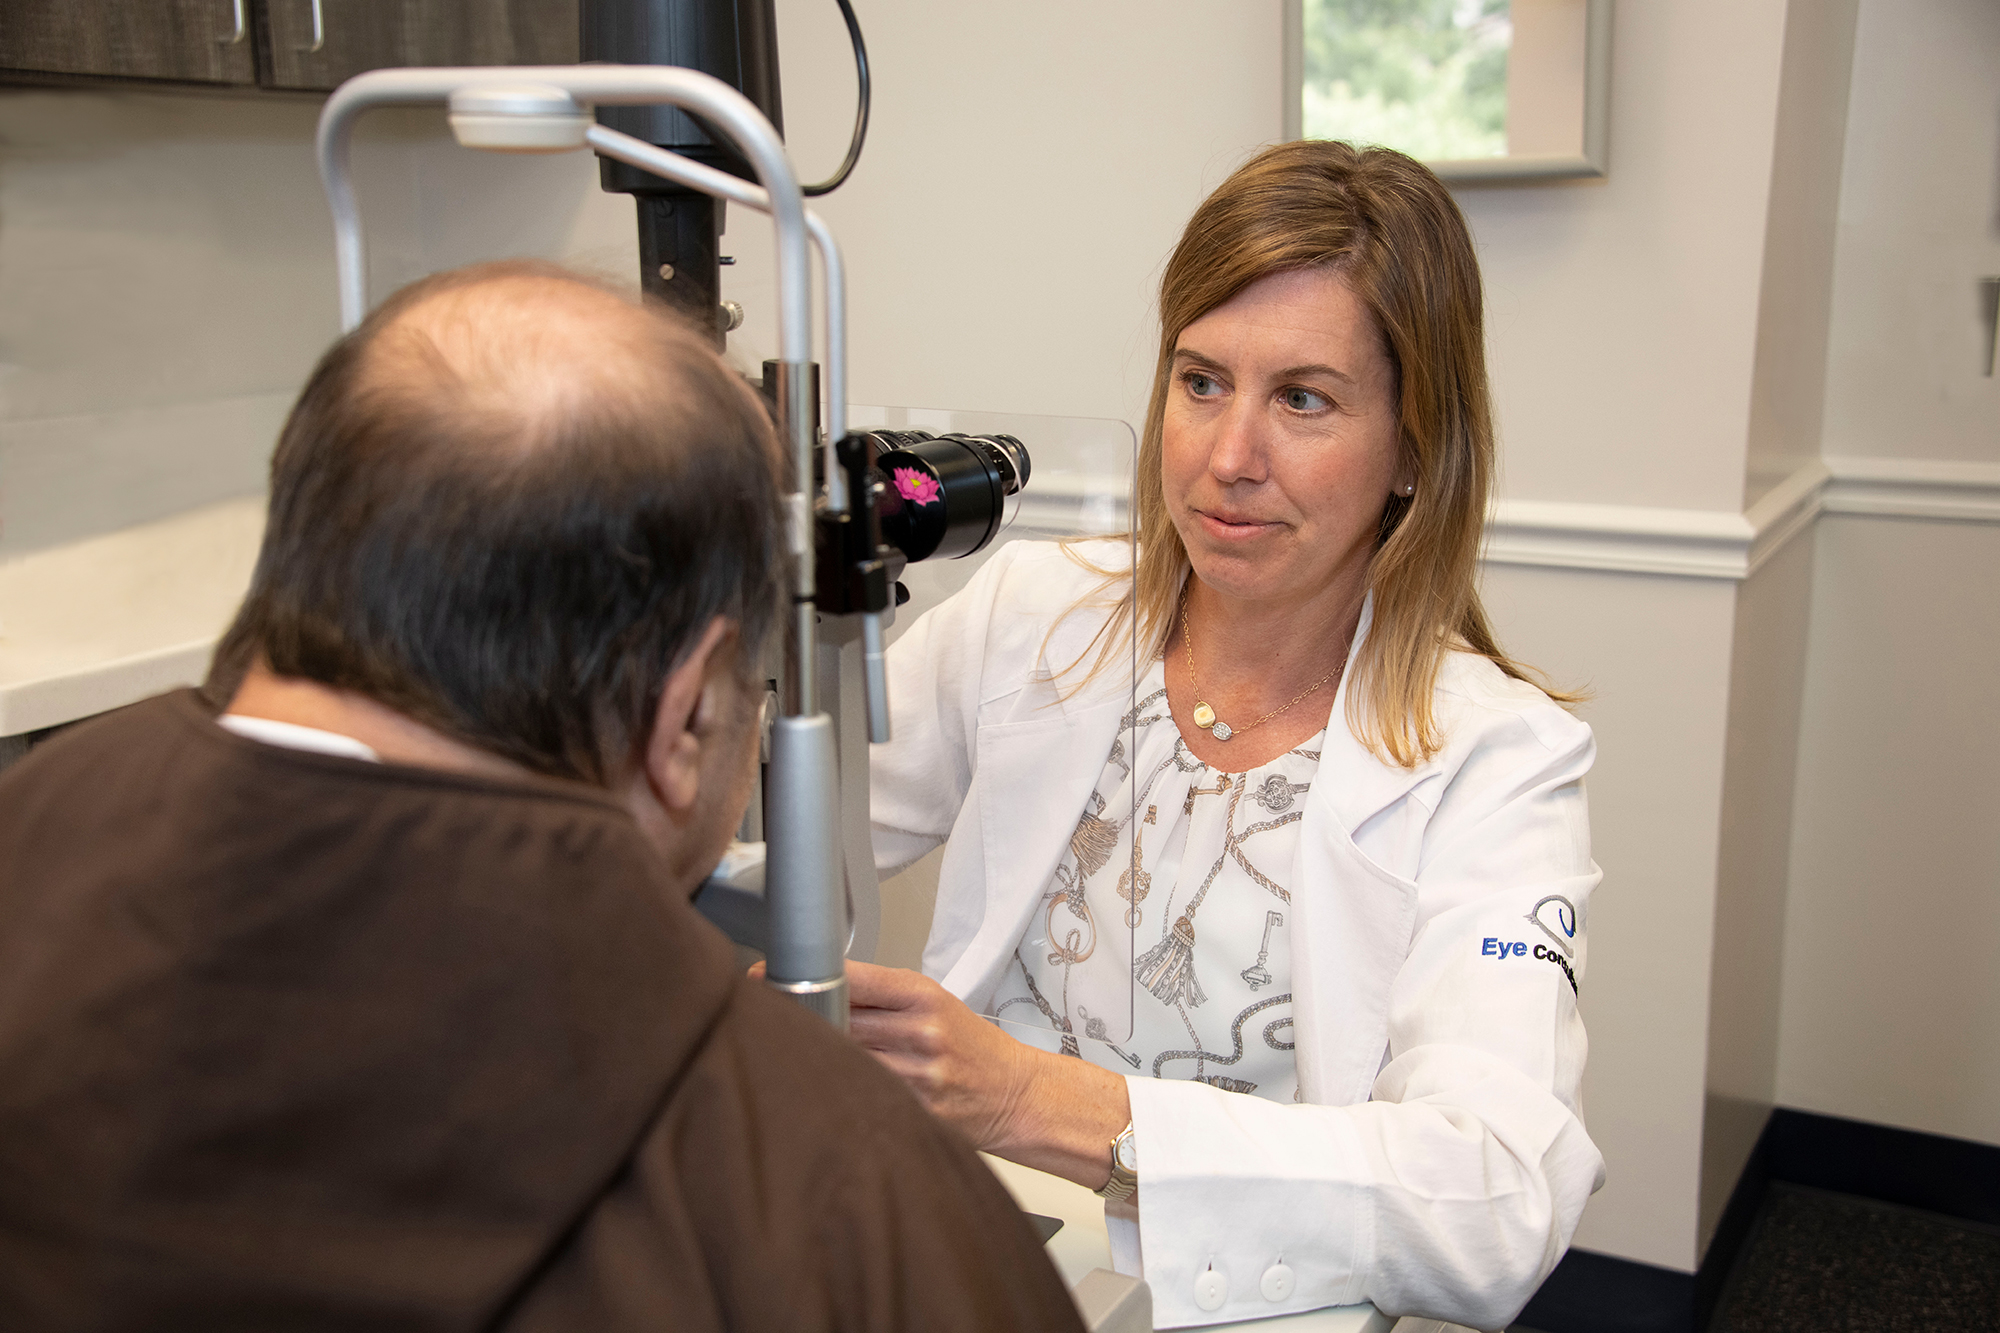 Delaware Glaucoma Specialist Dr. Heather Dealy providing eye exam for glaucoma patient